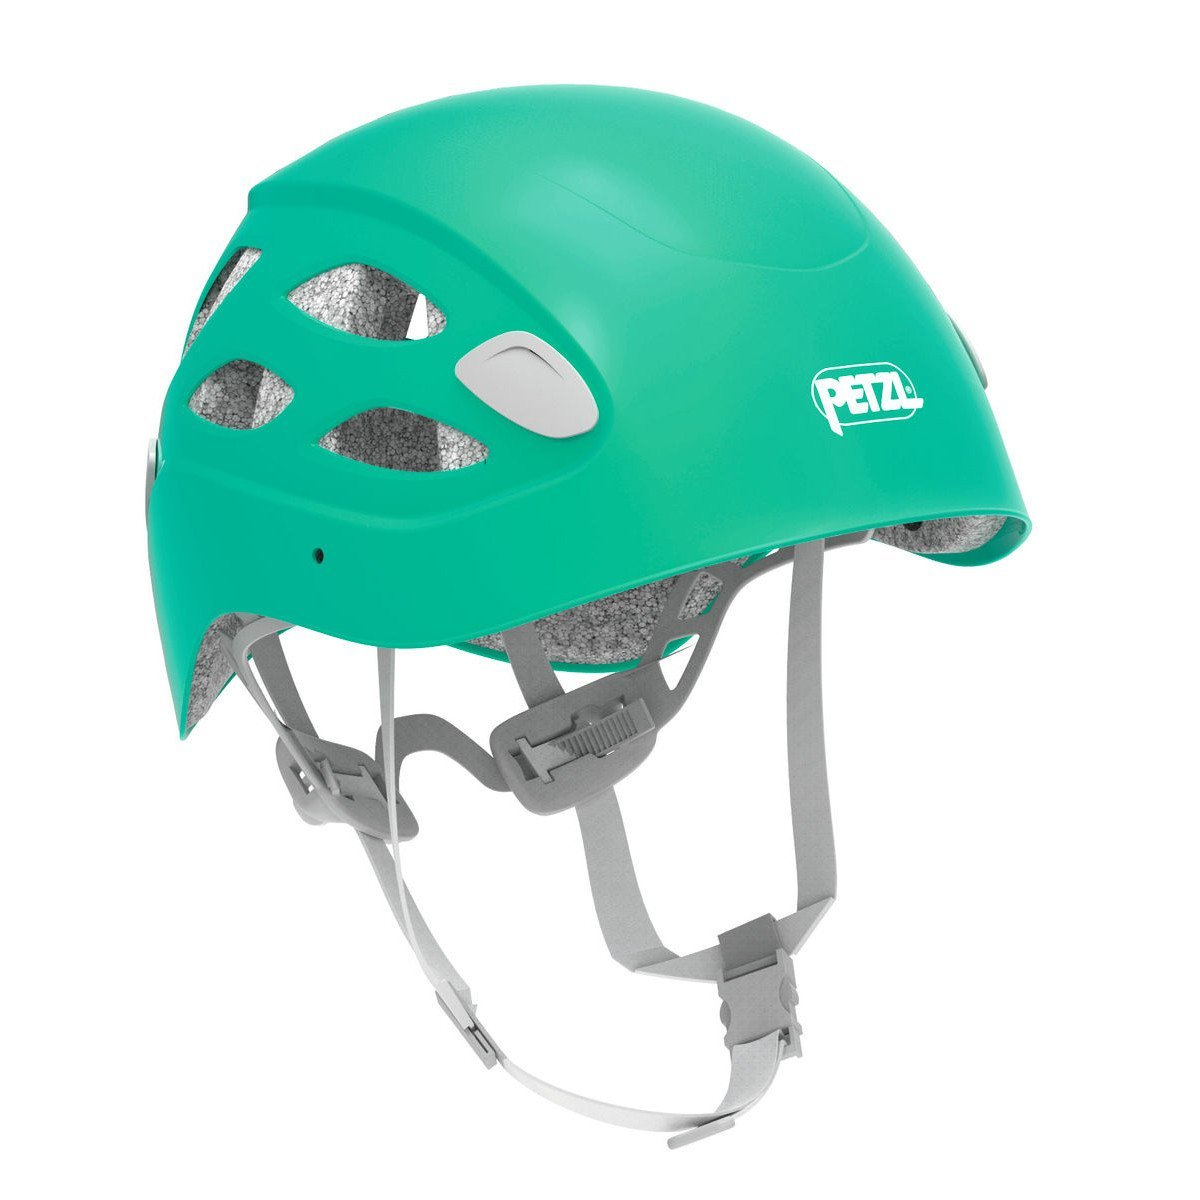 Petzl Borea multi-sport helmet, front/side view in Green colour